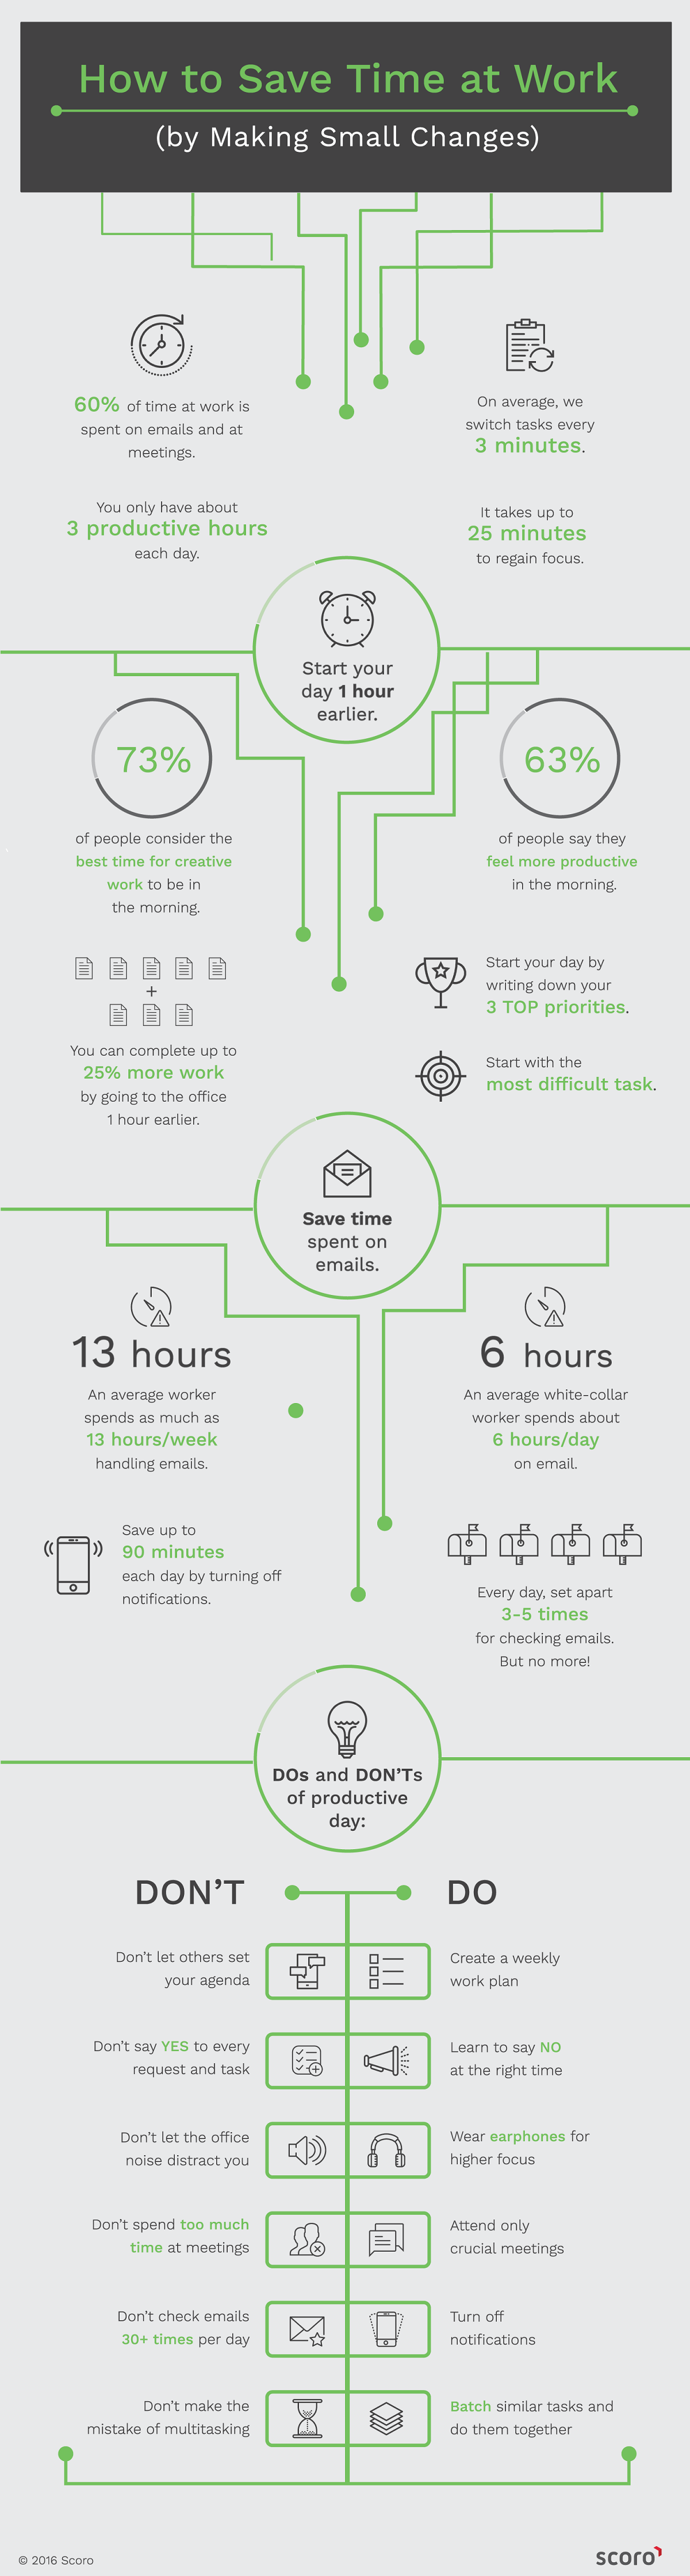 How to Save Time at Work by Making Small Changes #infographic